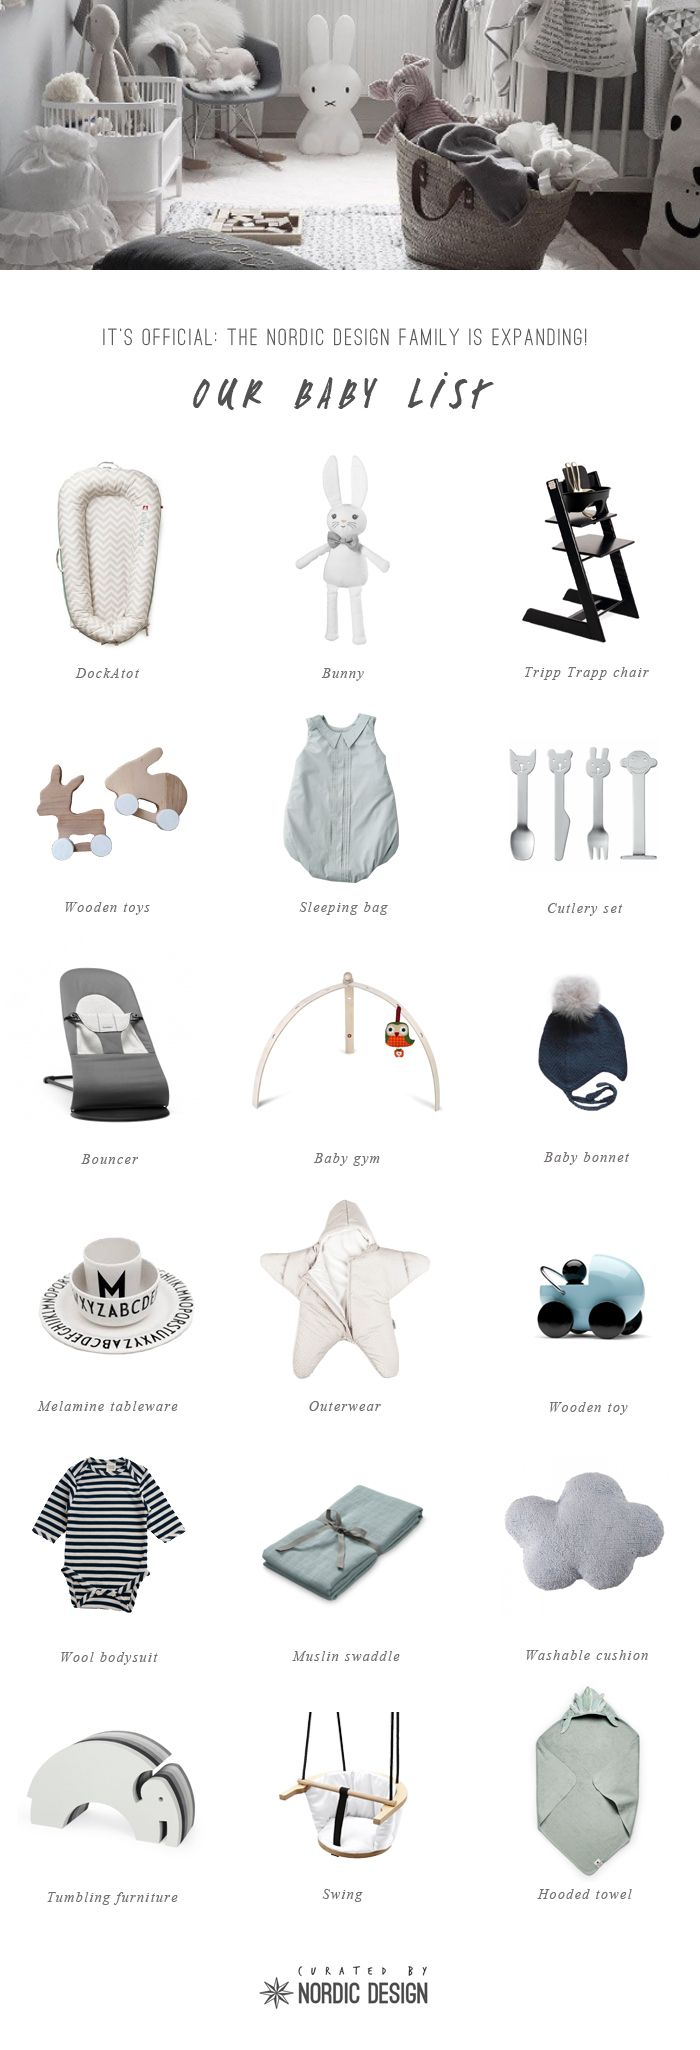 Nordicdesign S Baby List Must Haves From Our Favourite Mostly Scandinavian Brands Best Products Ideas New Baby Products Baby List Scandinavian Baby